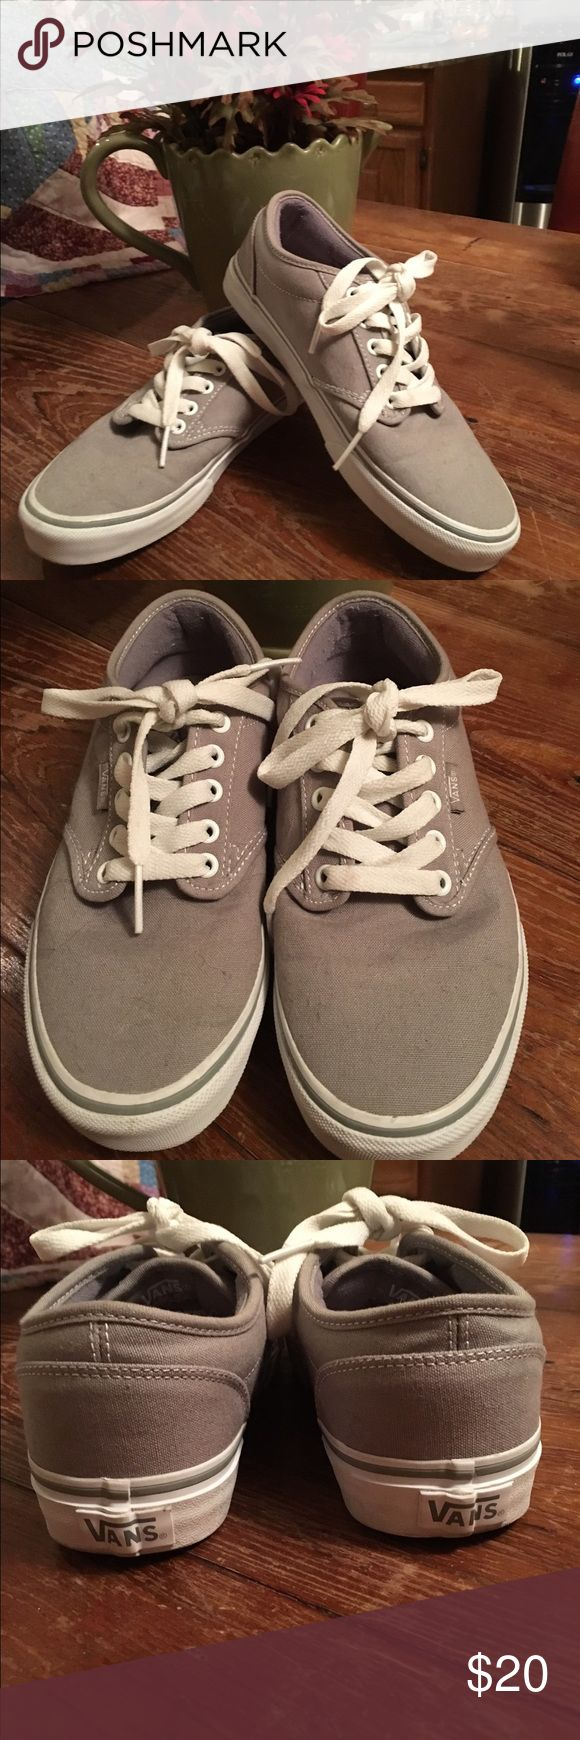 Vans in grey for ladies. Hardly worn. Size 8 Grey ladies Vans Size 8.  In great condition, worn only handful of times. Great buy Vans Shoes Sneakers